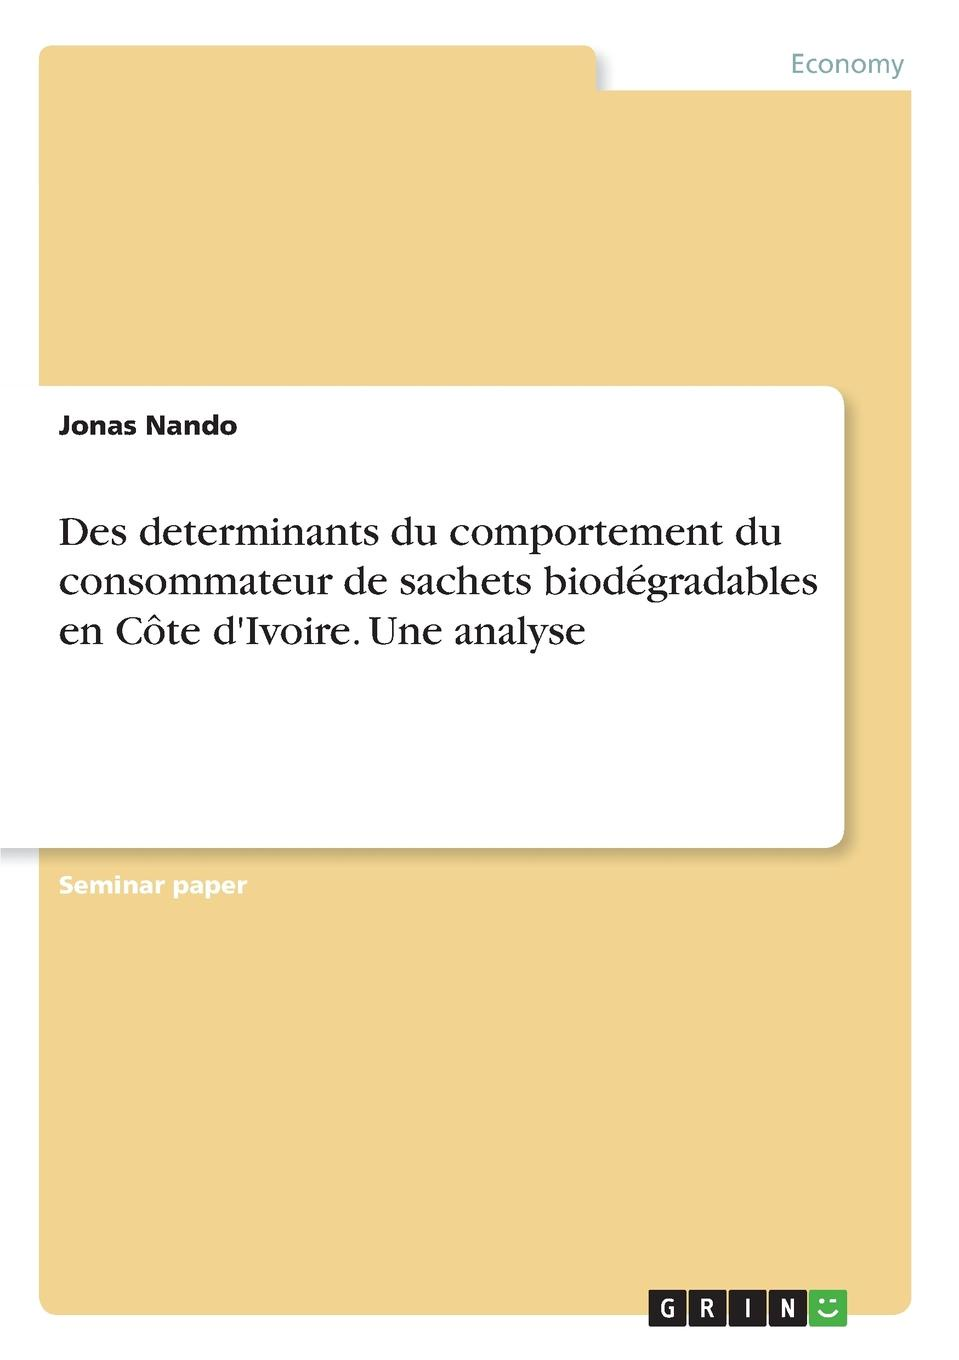 Jonas Nando Des determinants du comportement du consommateur de sachets biodegradables en Cote d.Ivoire. Une analyse sully prudhomme prose 1883 l expression dans les beaux arts application de la psychologie a l etude de l artiste et des beaux arts french edition